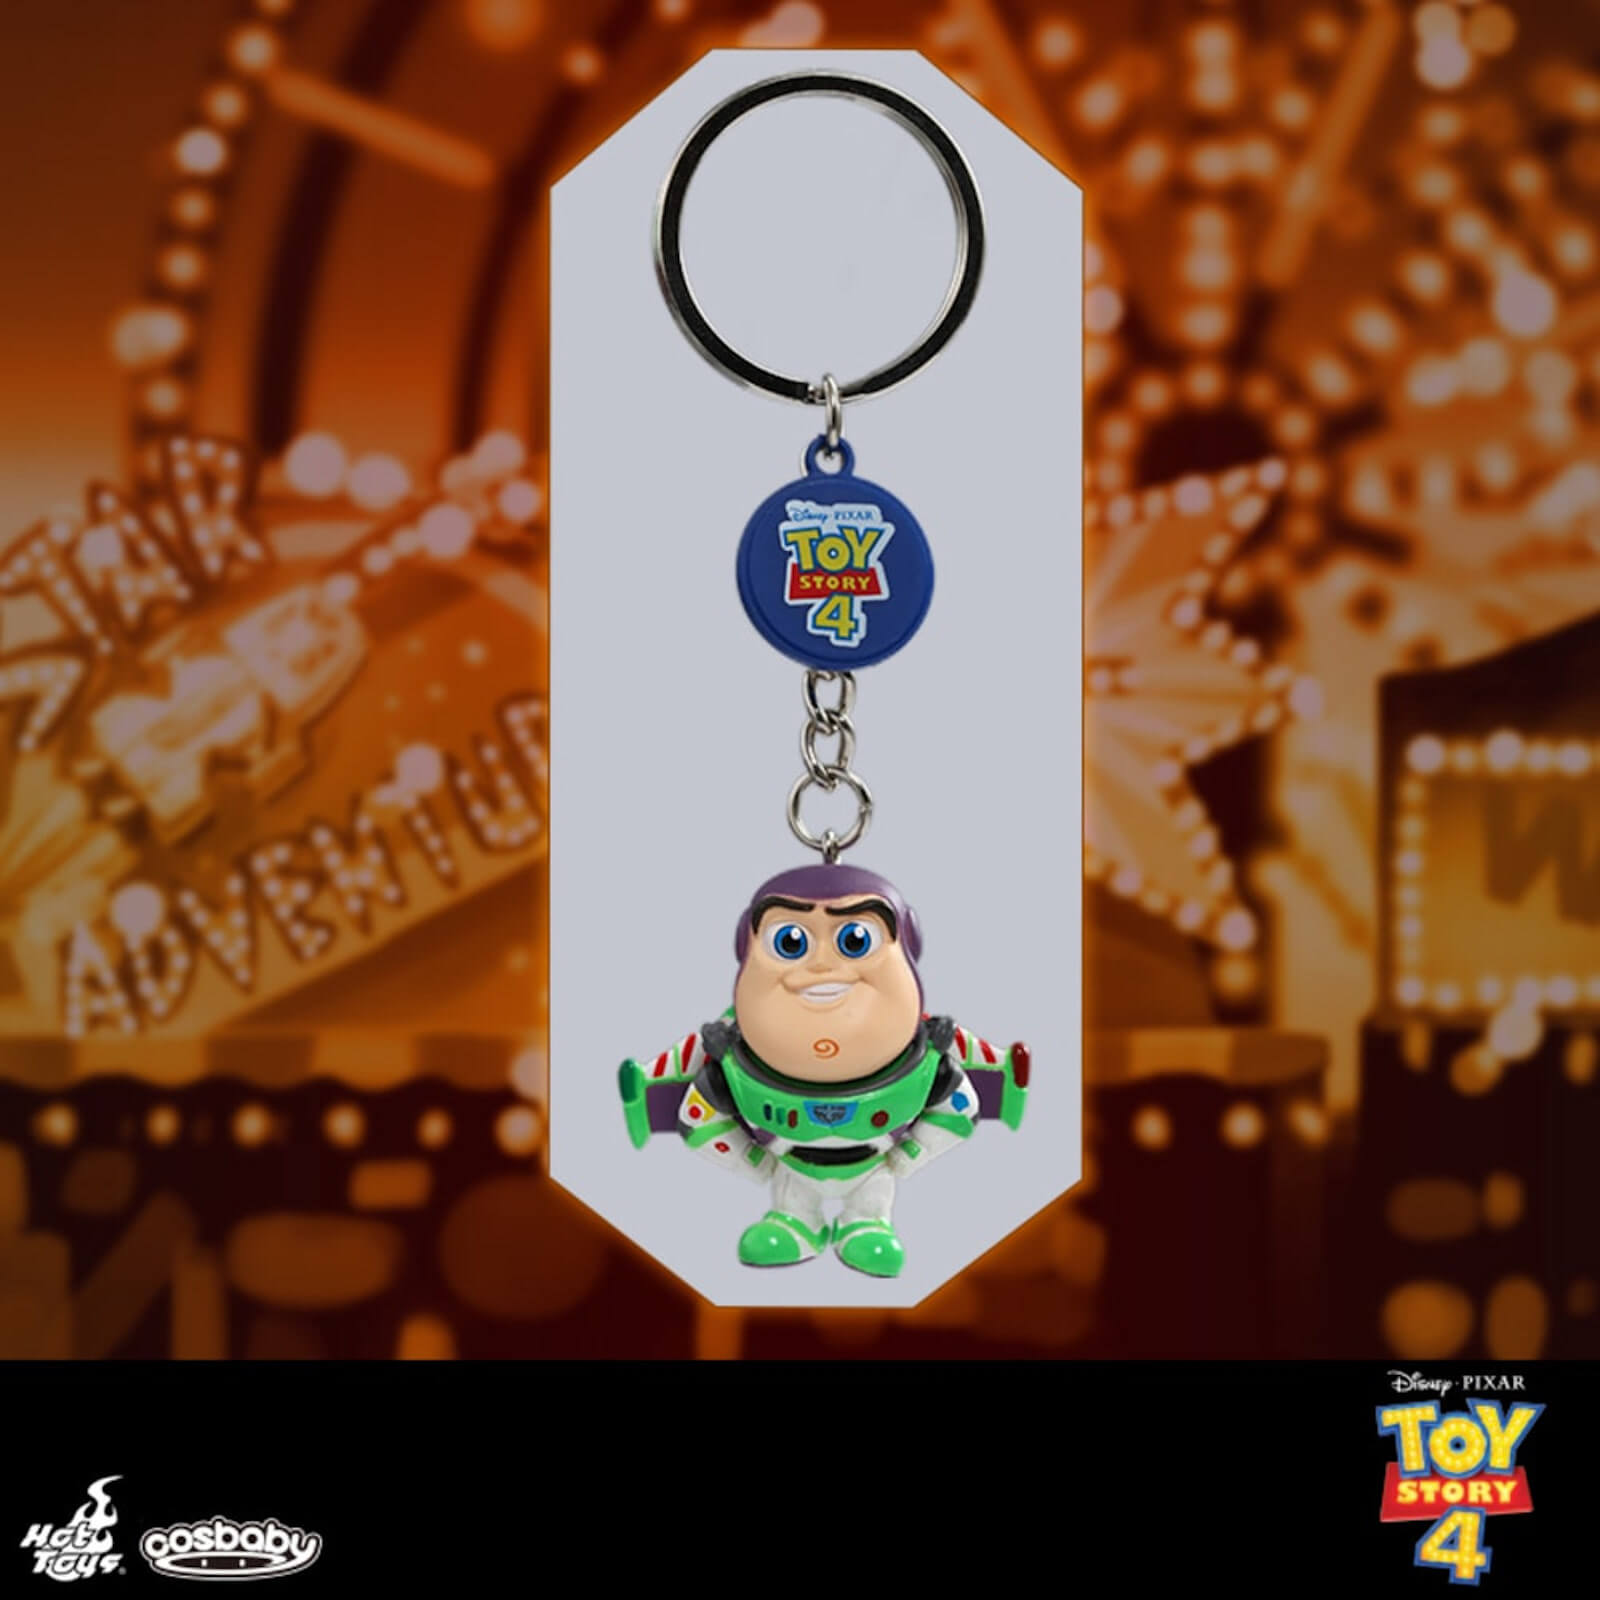 Image of Hot Toys Cosbaby Toy Story 4 Buzz Lightyear Keychain